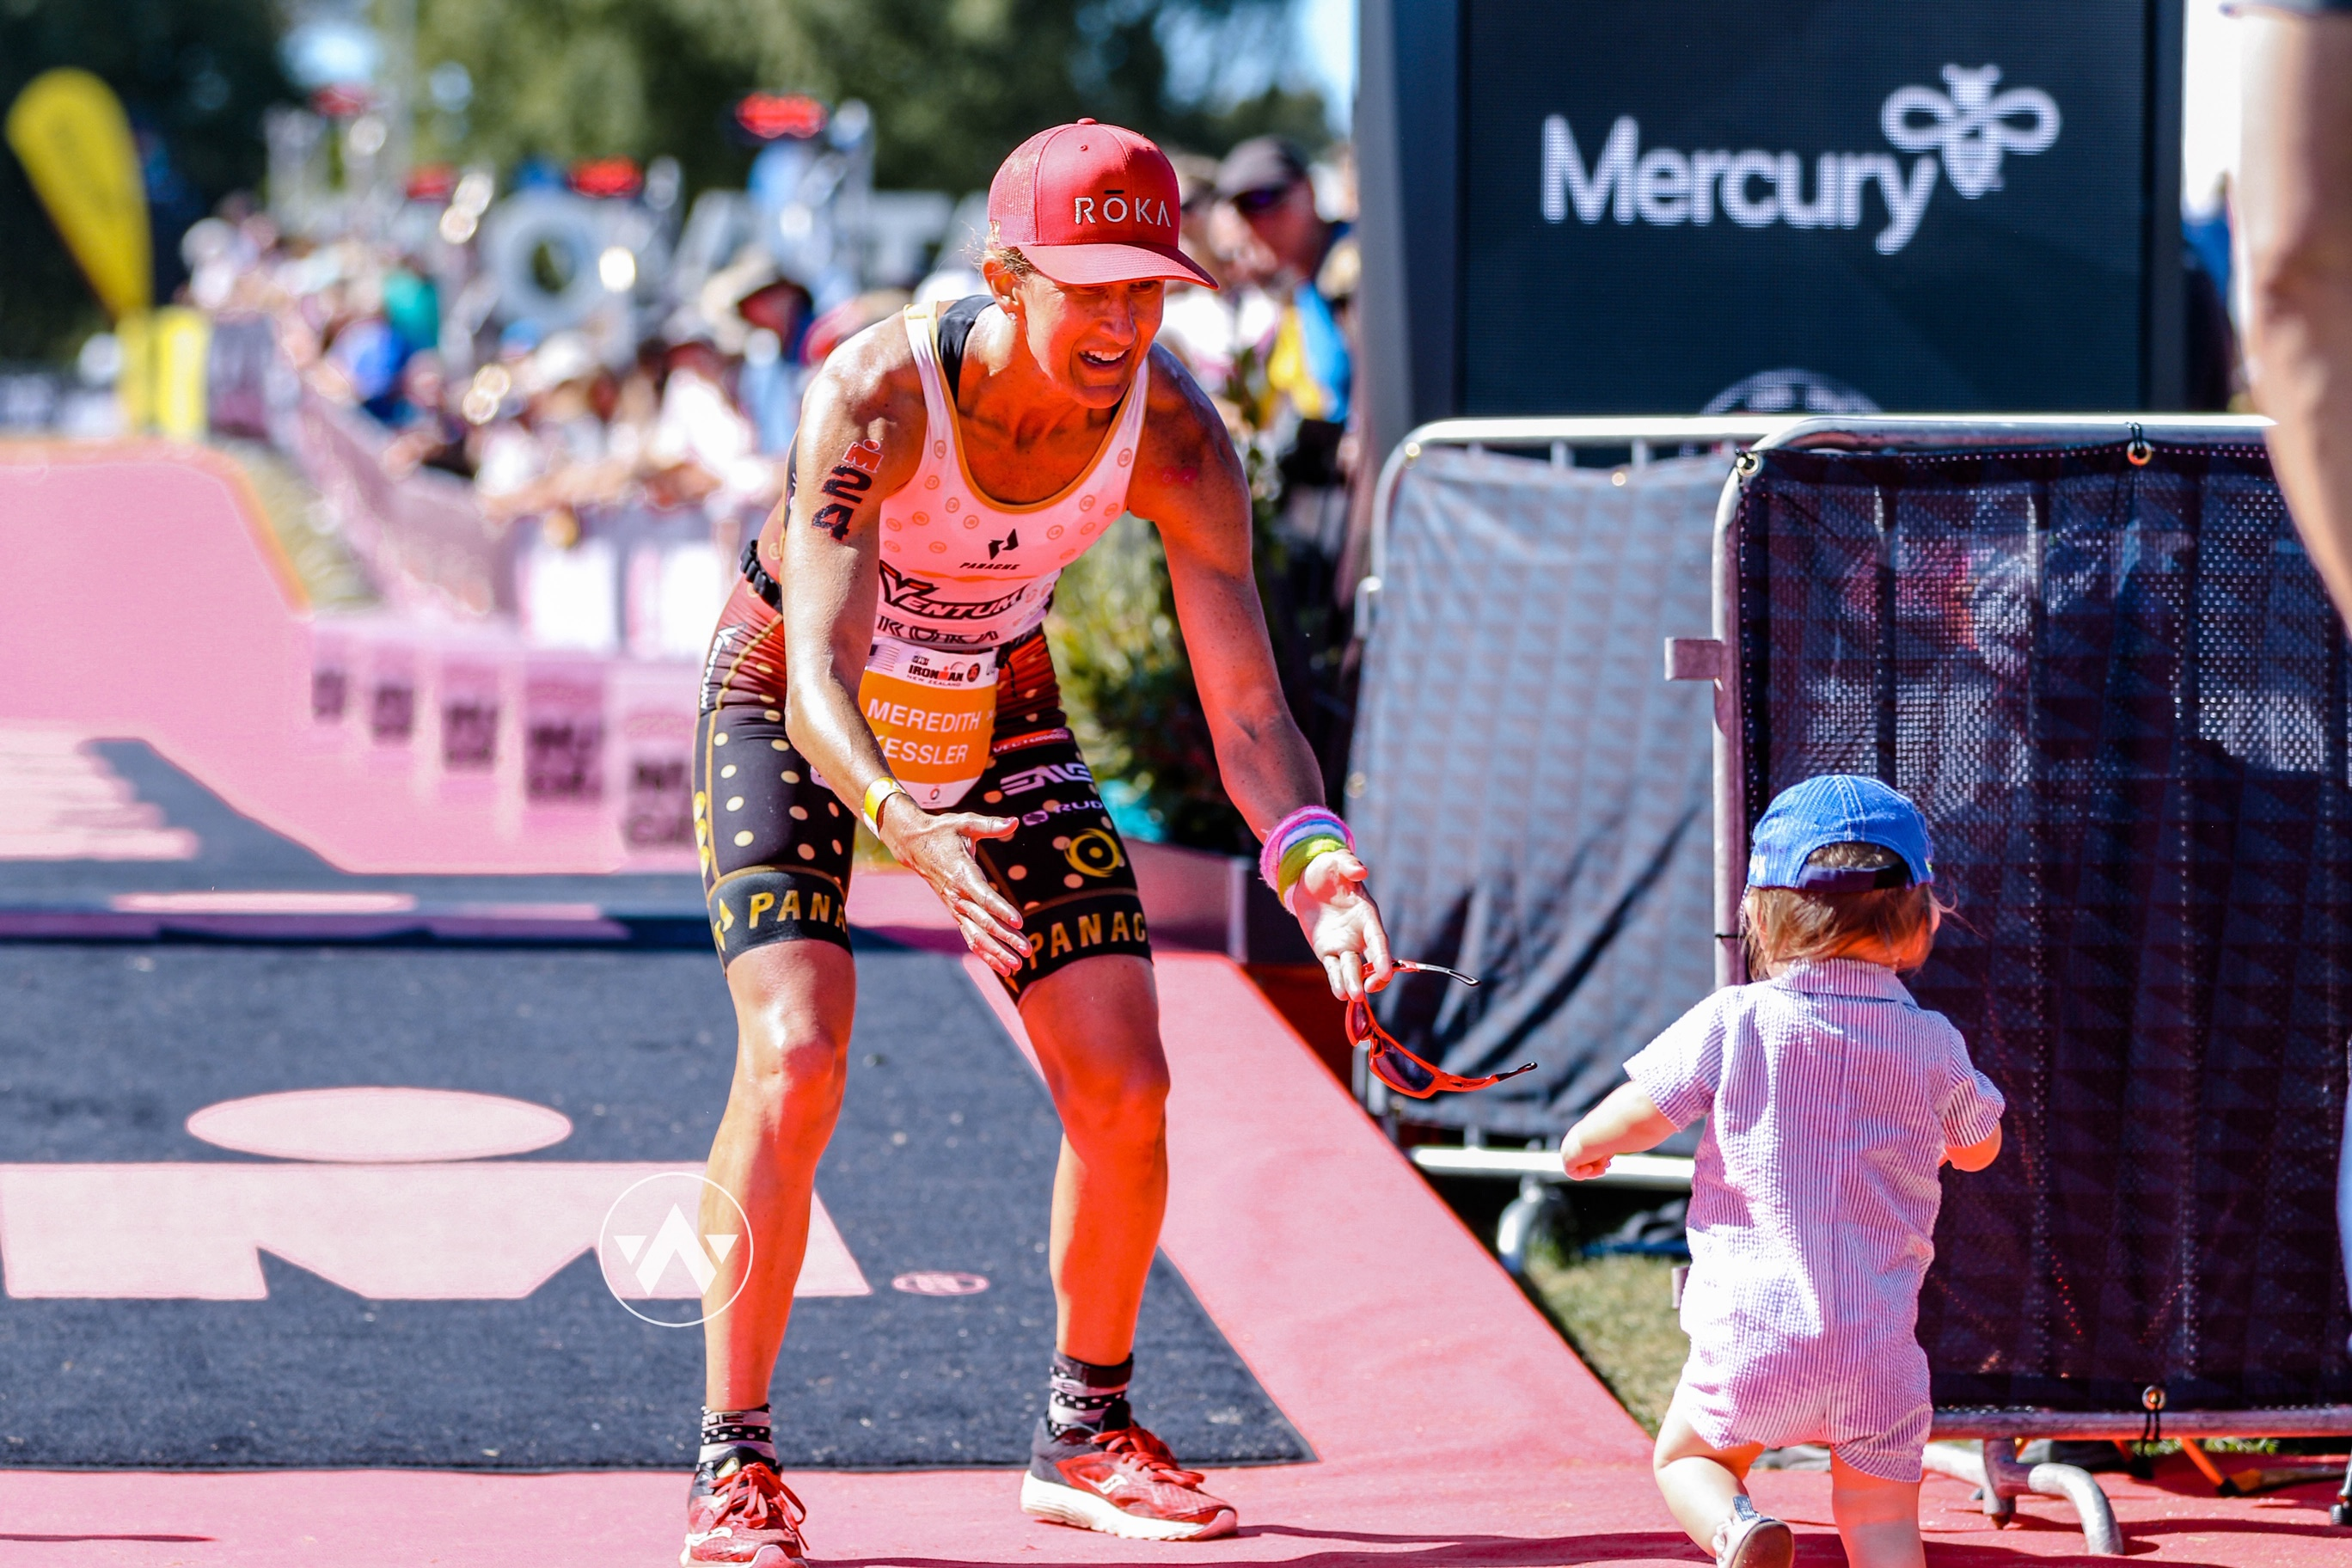 Meredith Kessler Professional Triathlete Finish Line 2019 Ironman New Zealand